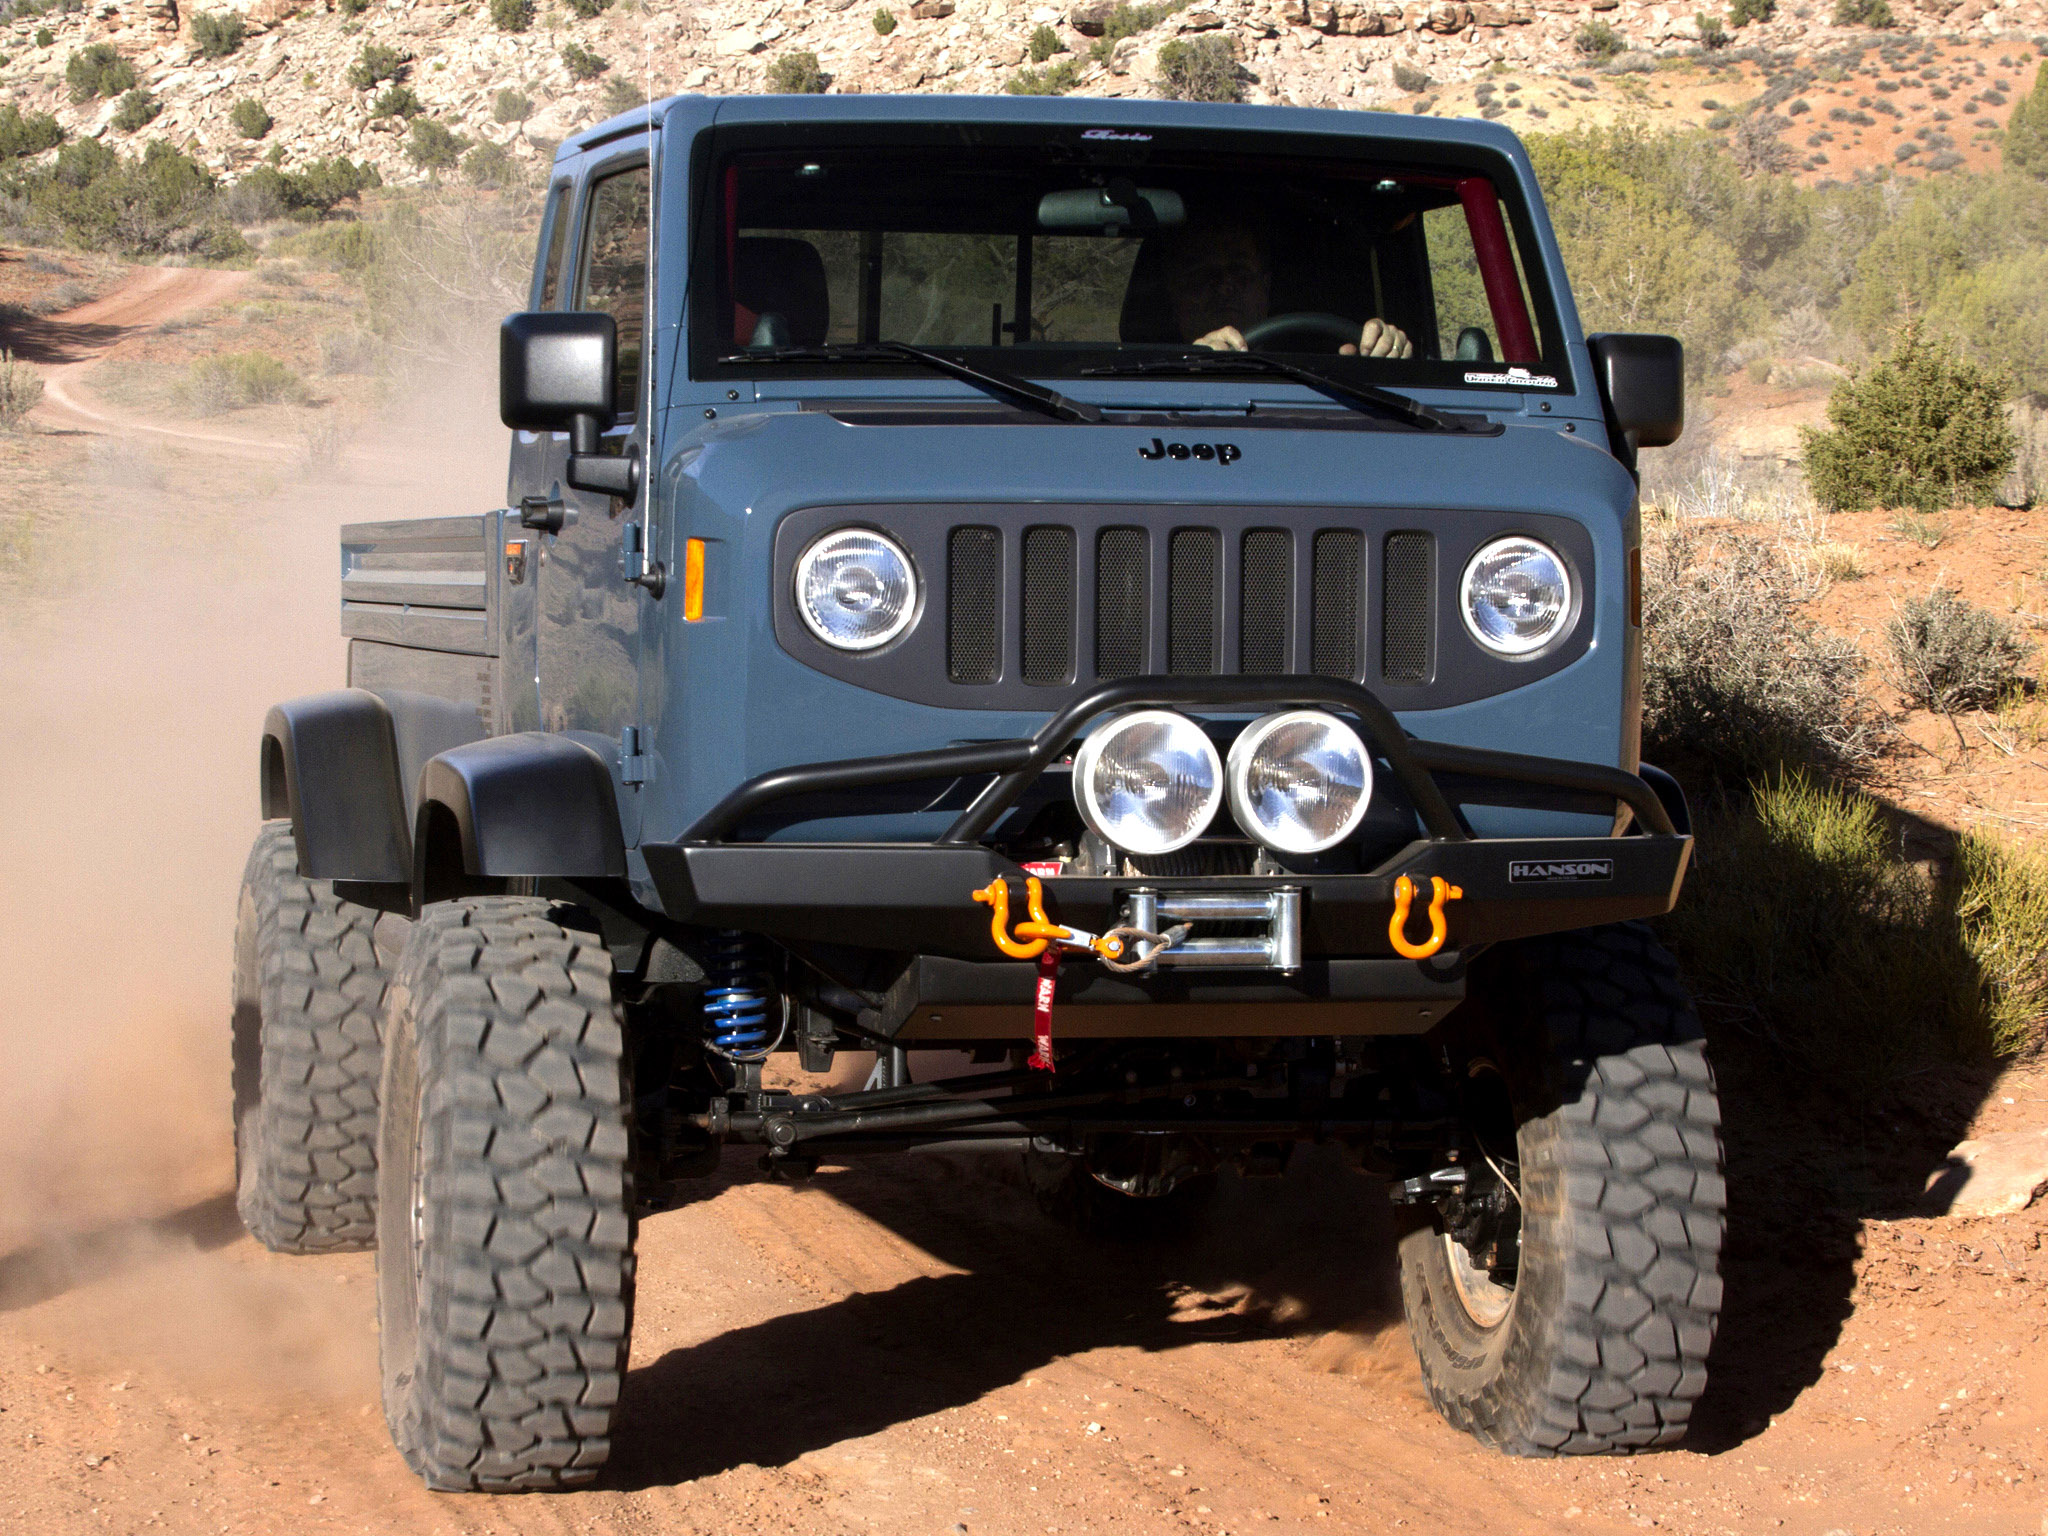 Jeep 4x4 2017 >> 2012 Jeep Mighty FC Concept offroad 4x4 truck d wallpaper ...